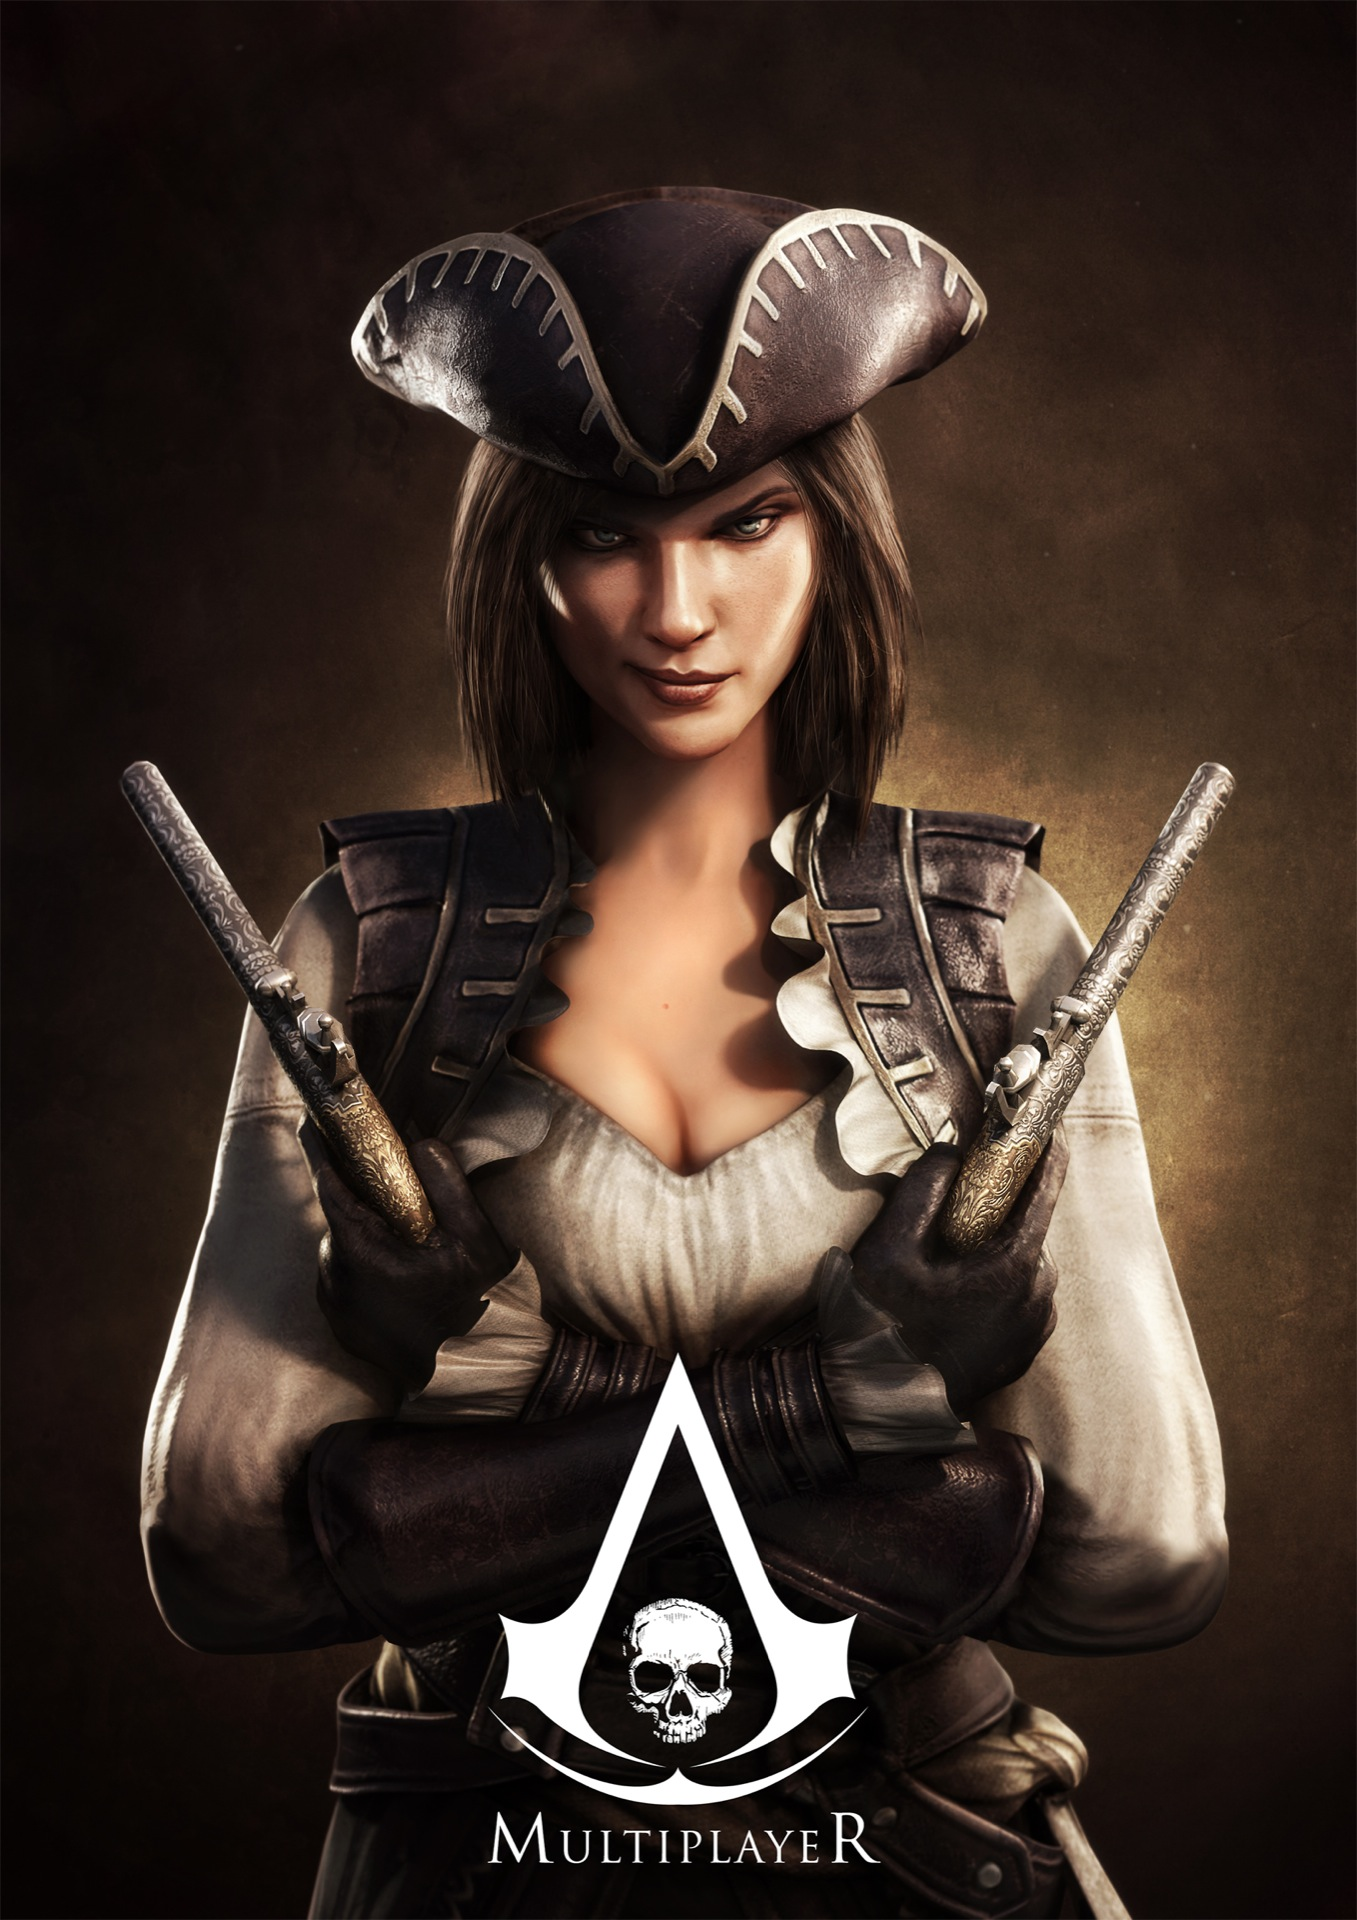 Lady black from assassin's creed 4 online  hentai photos